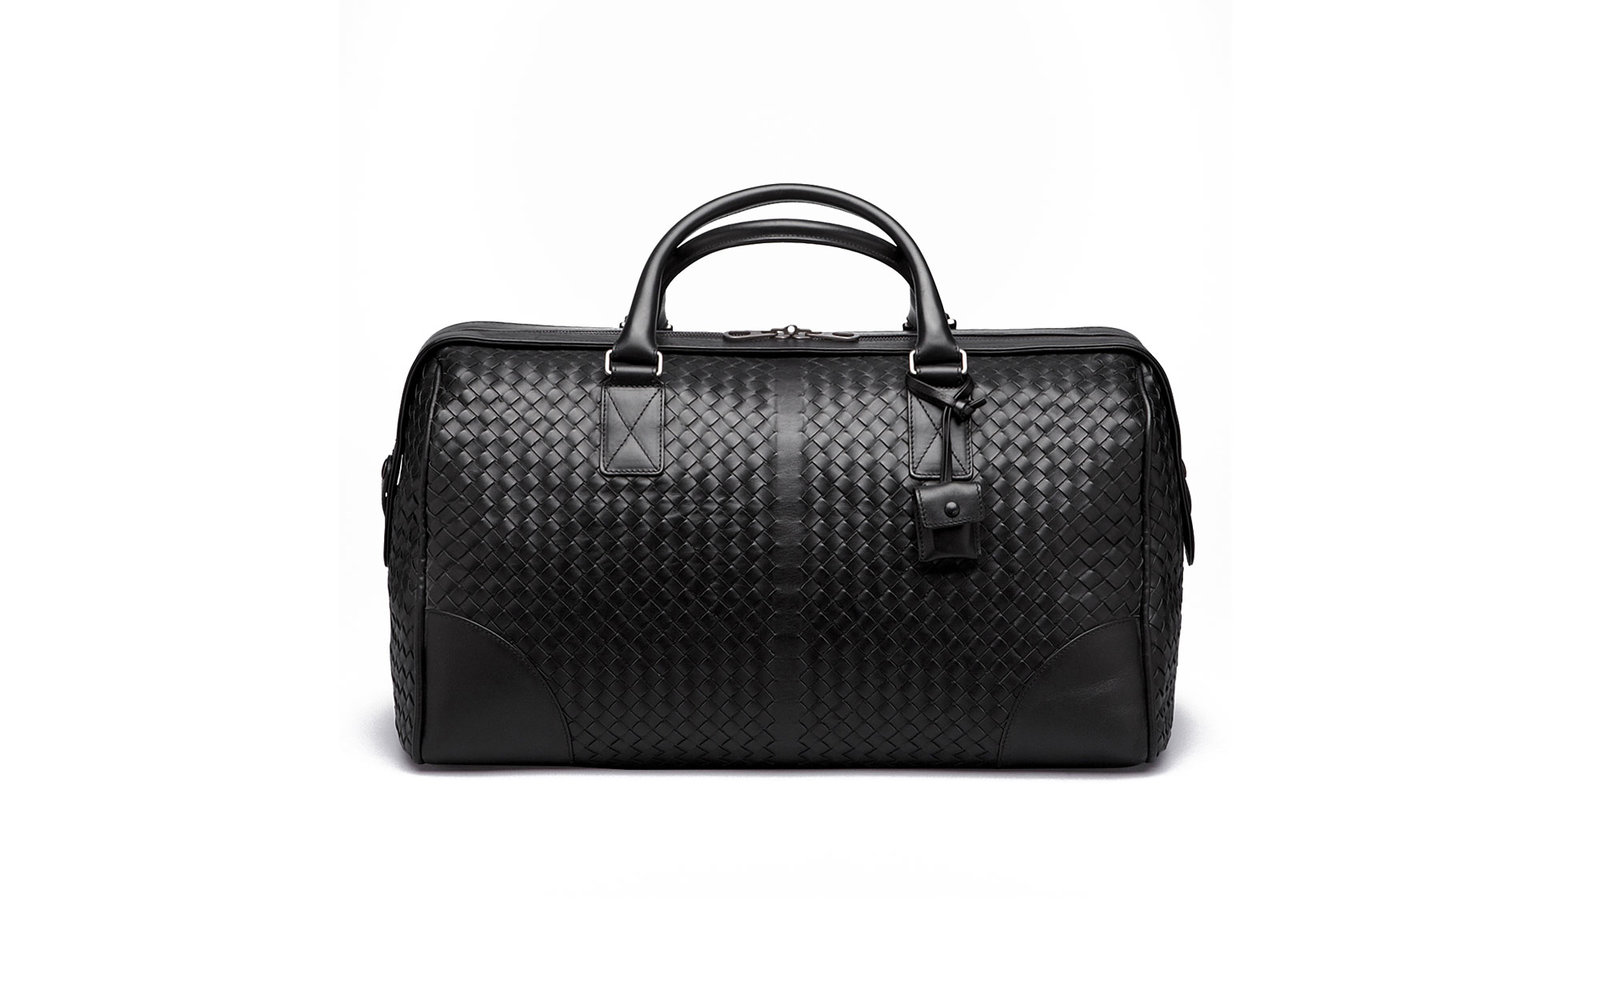 3fea73dd86 Bottega Veneta Medium Duffel Bag. Weekender Bags